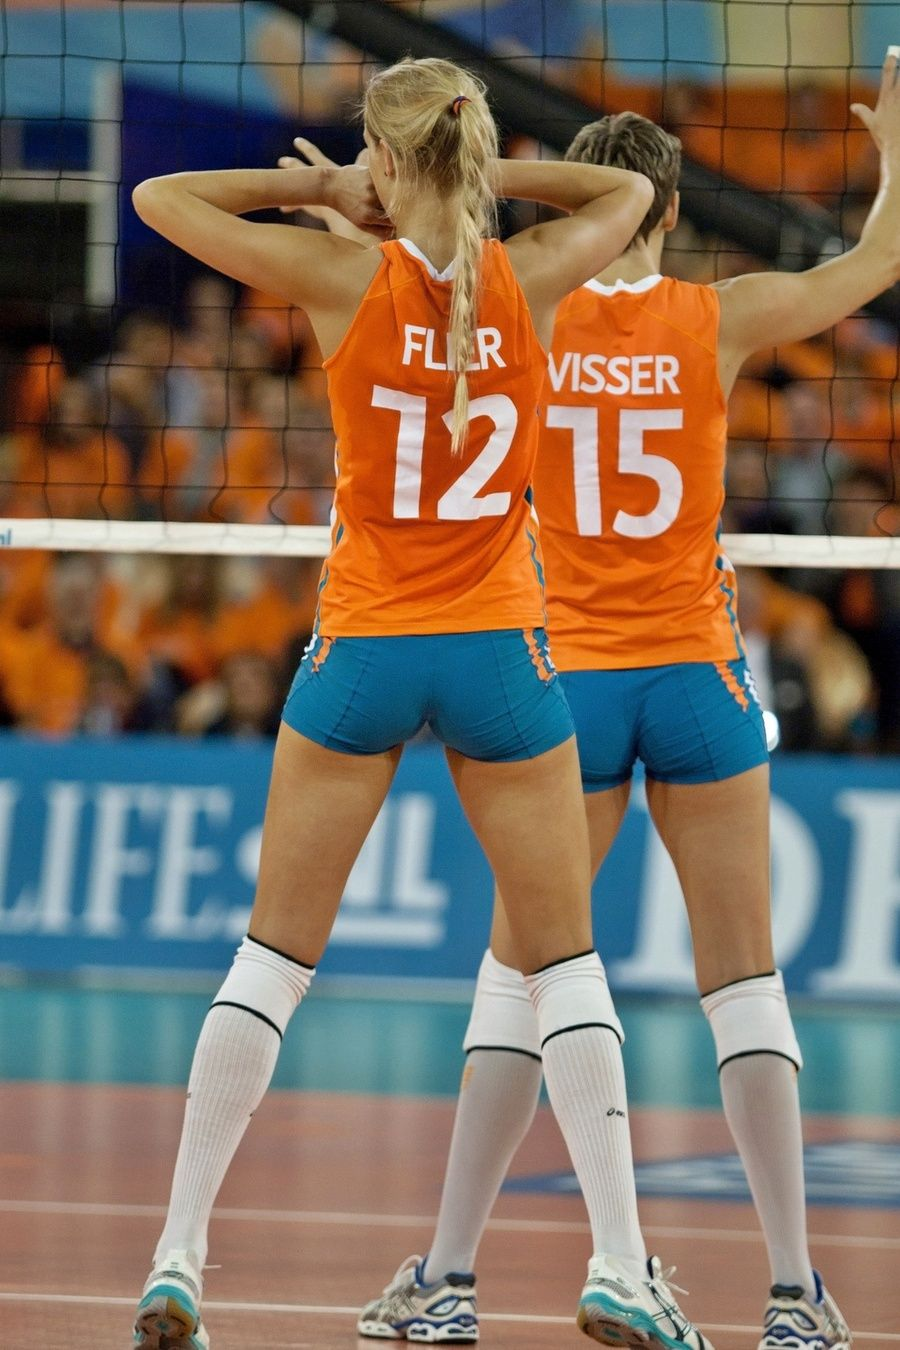 Olympic88 Women Volleyball Female Volleyball Players Female Athletes